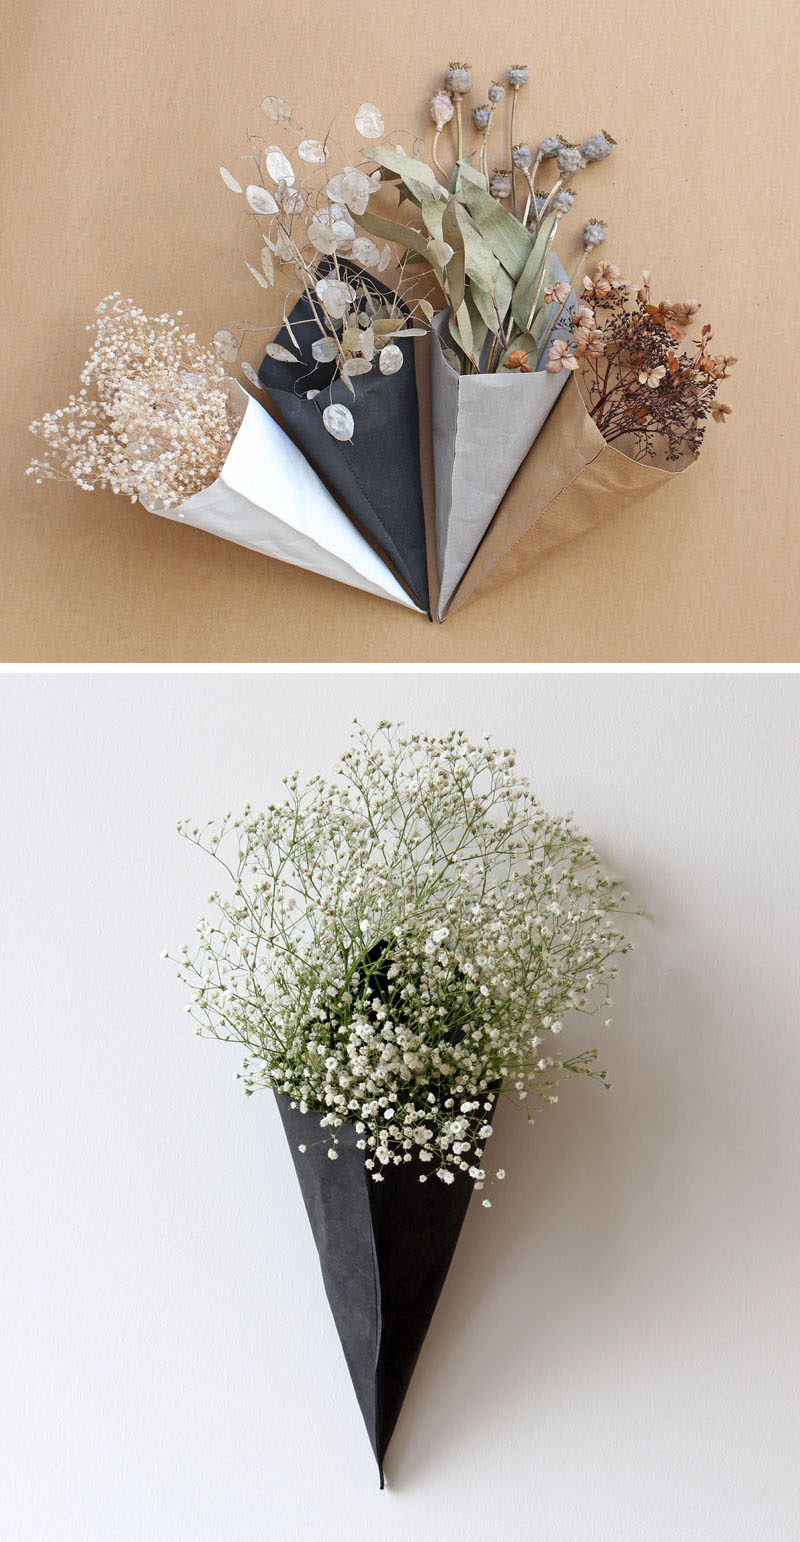 Wall Decor Idea - These modern cone-shaped wall planters and storage pieces are made from a material that looks like paper. #ModernDecor #WallDecorIdeas #ModernWallPlanters #StorageIdeas #WallStorage